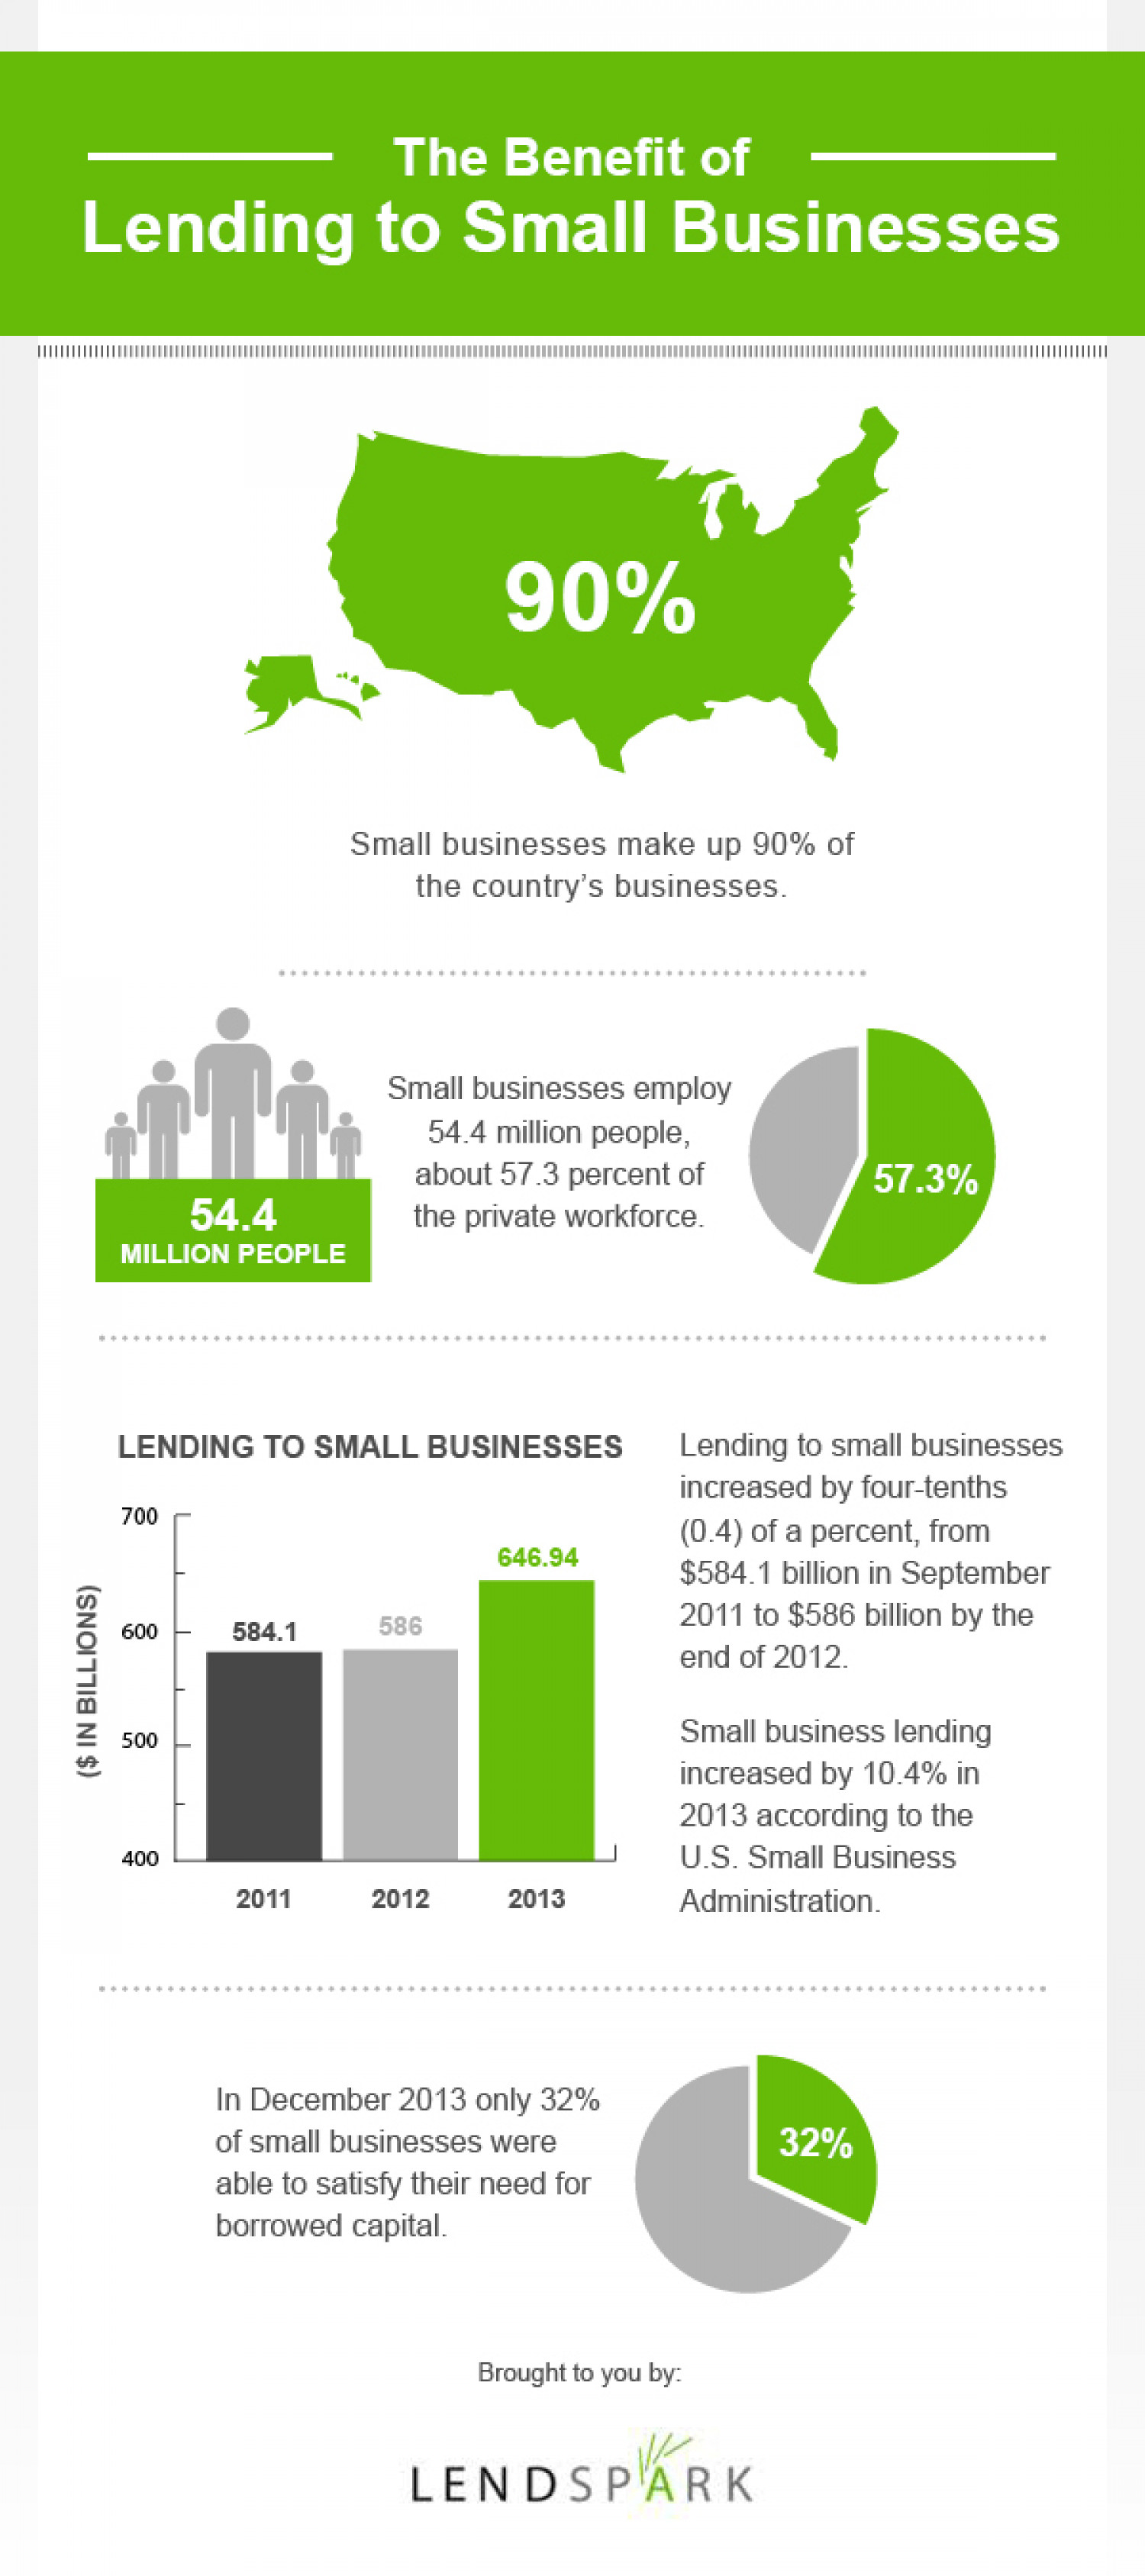 The Benefit of Lending to Small Businesses Infographic